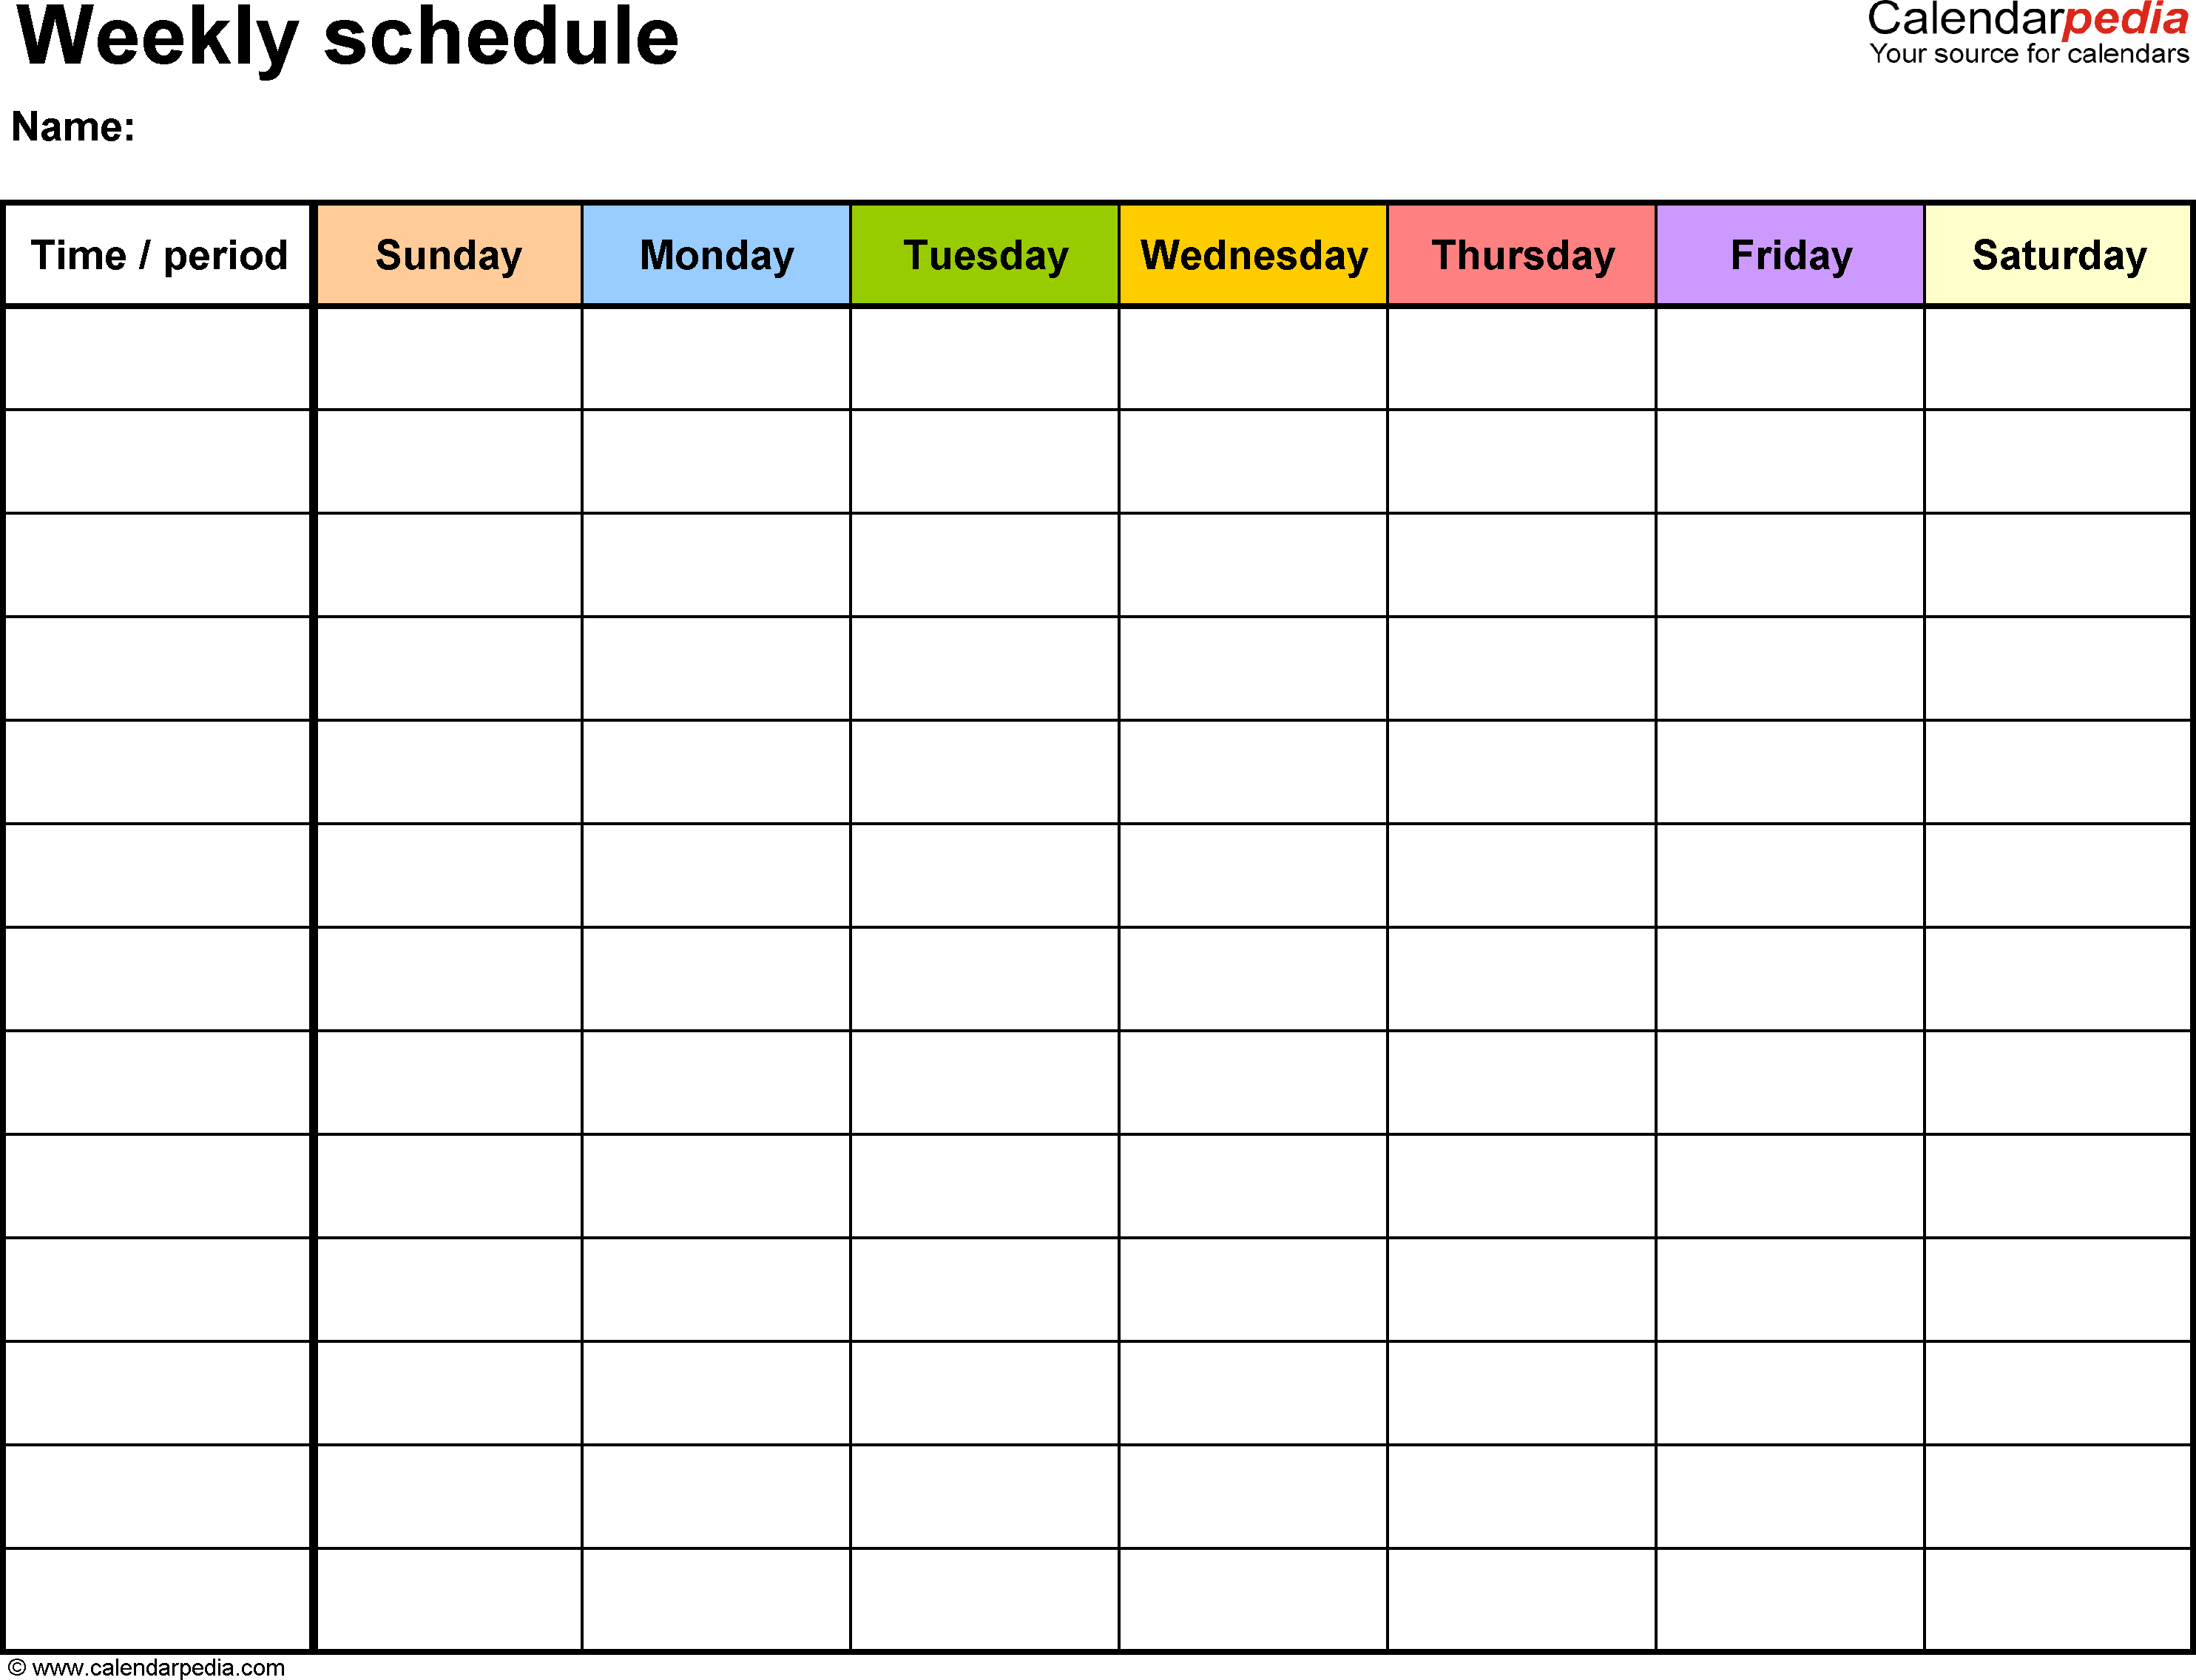 weekly schedule template for word version 13 landscape 1 page sunday to saturday 7 day week. Black Bedroom Furniture Sets. Home Design Ideas